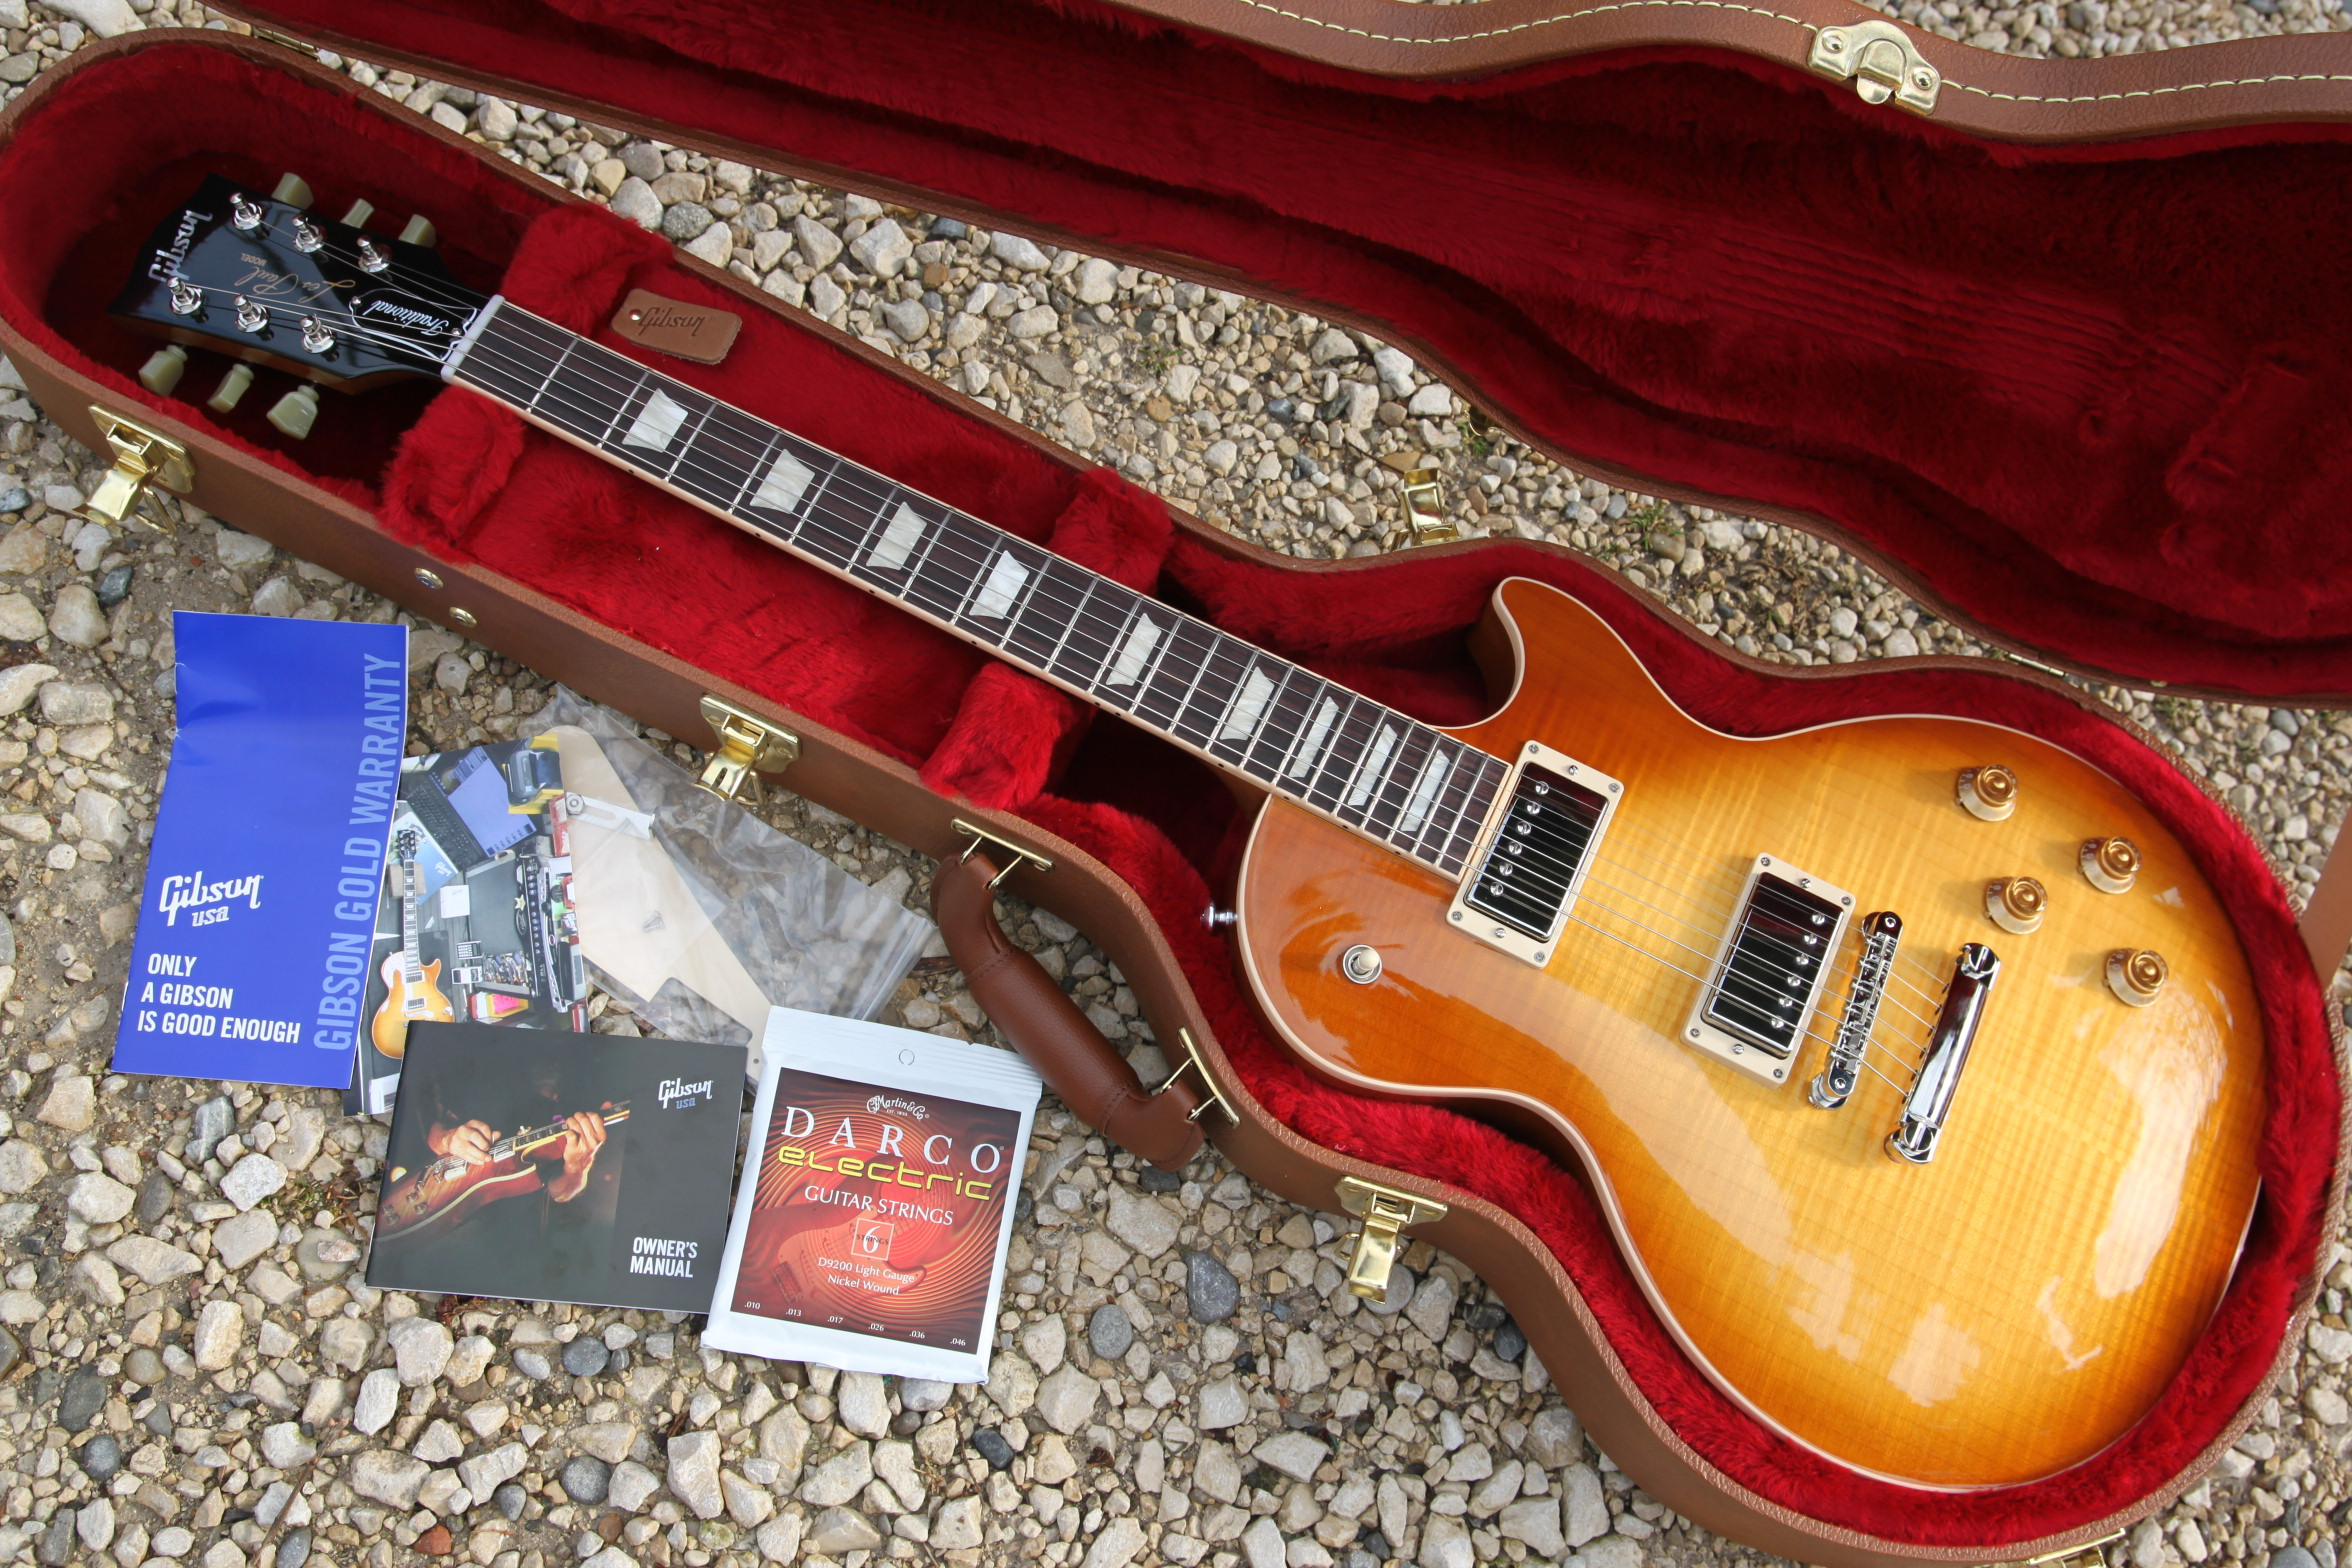 gibson les paul owners manual how to and user guide instructions u2022 rh taxibermuda co gibson les paul studio 2015 manual gibson les paul studio 2013 manual